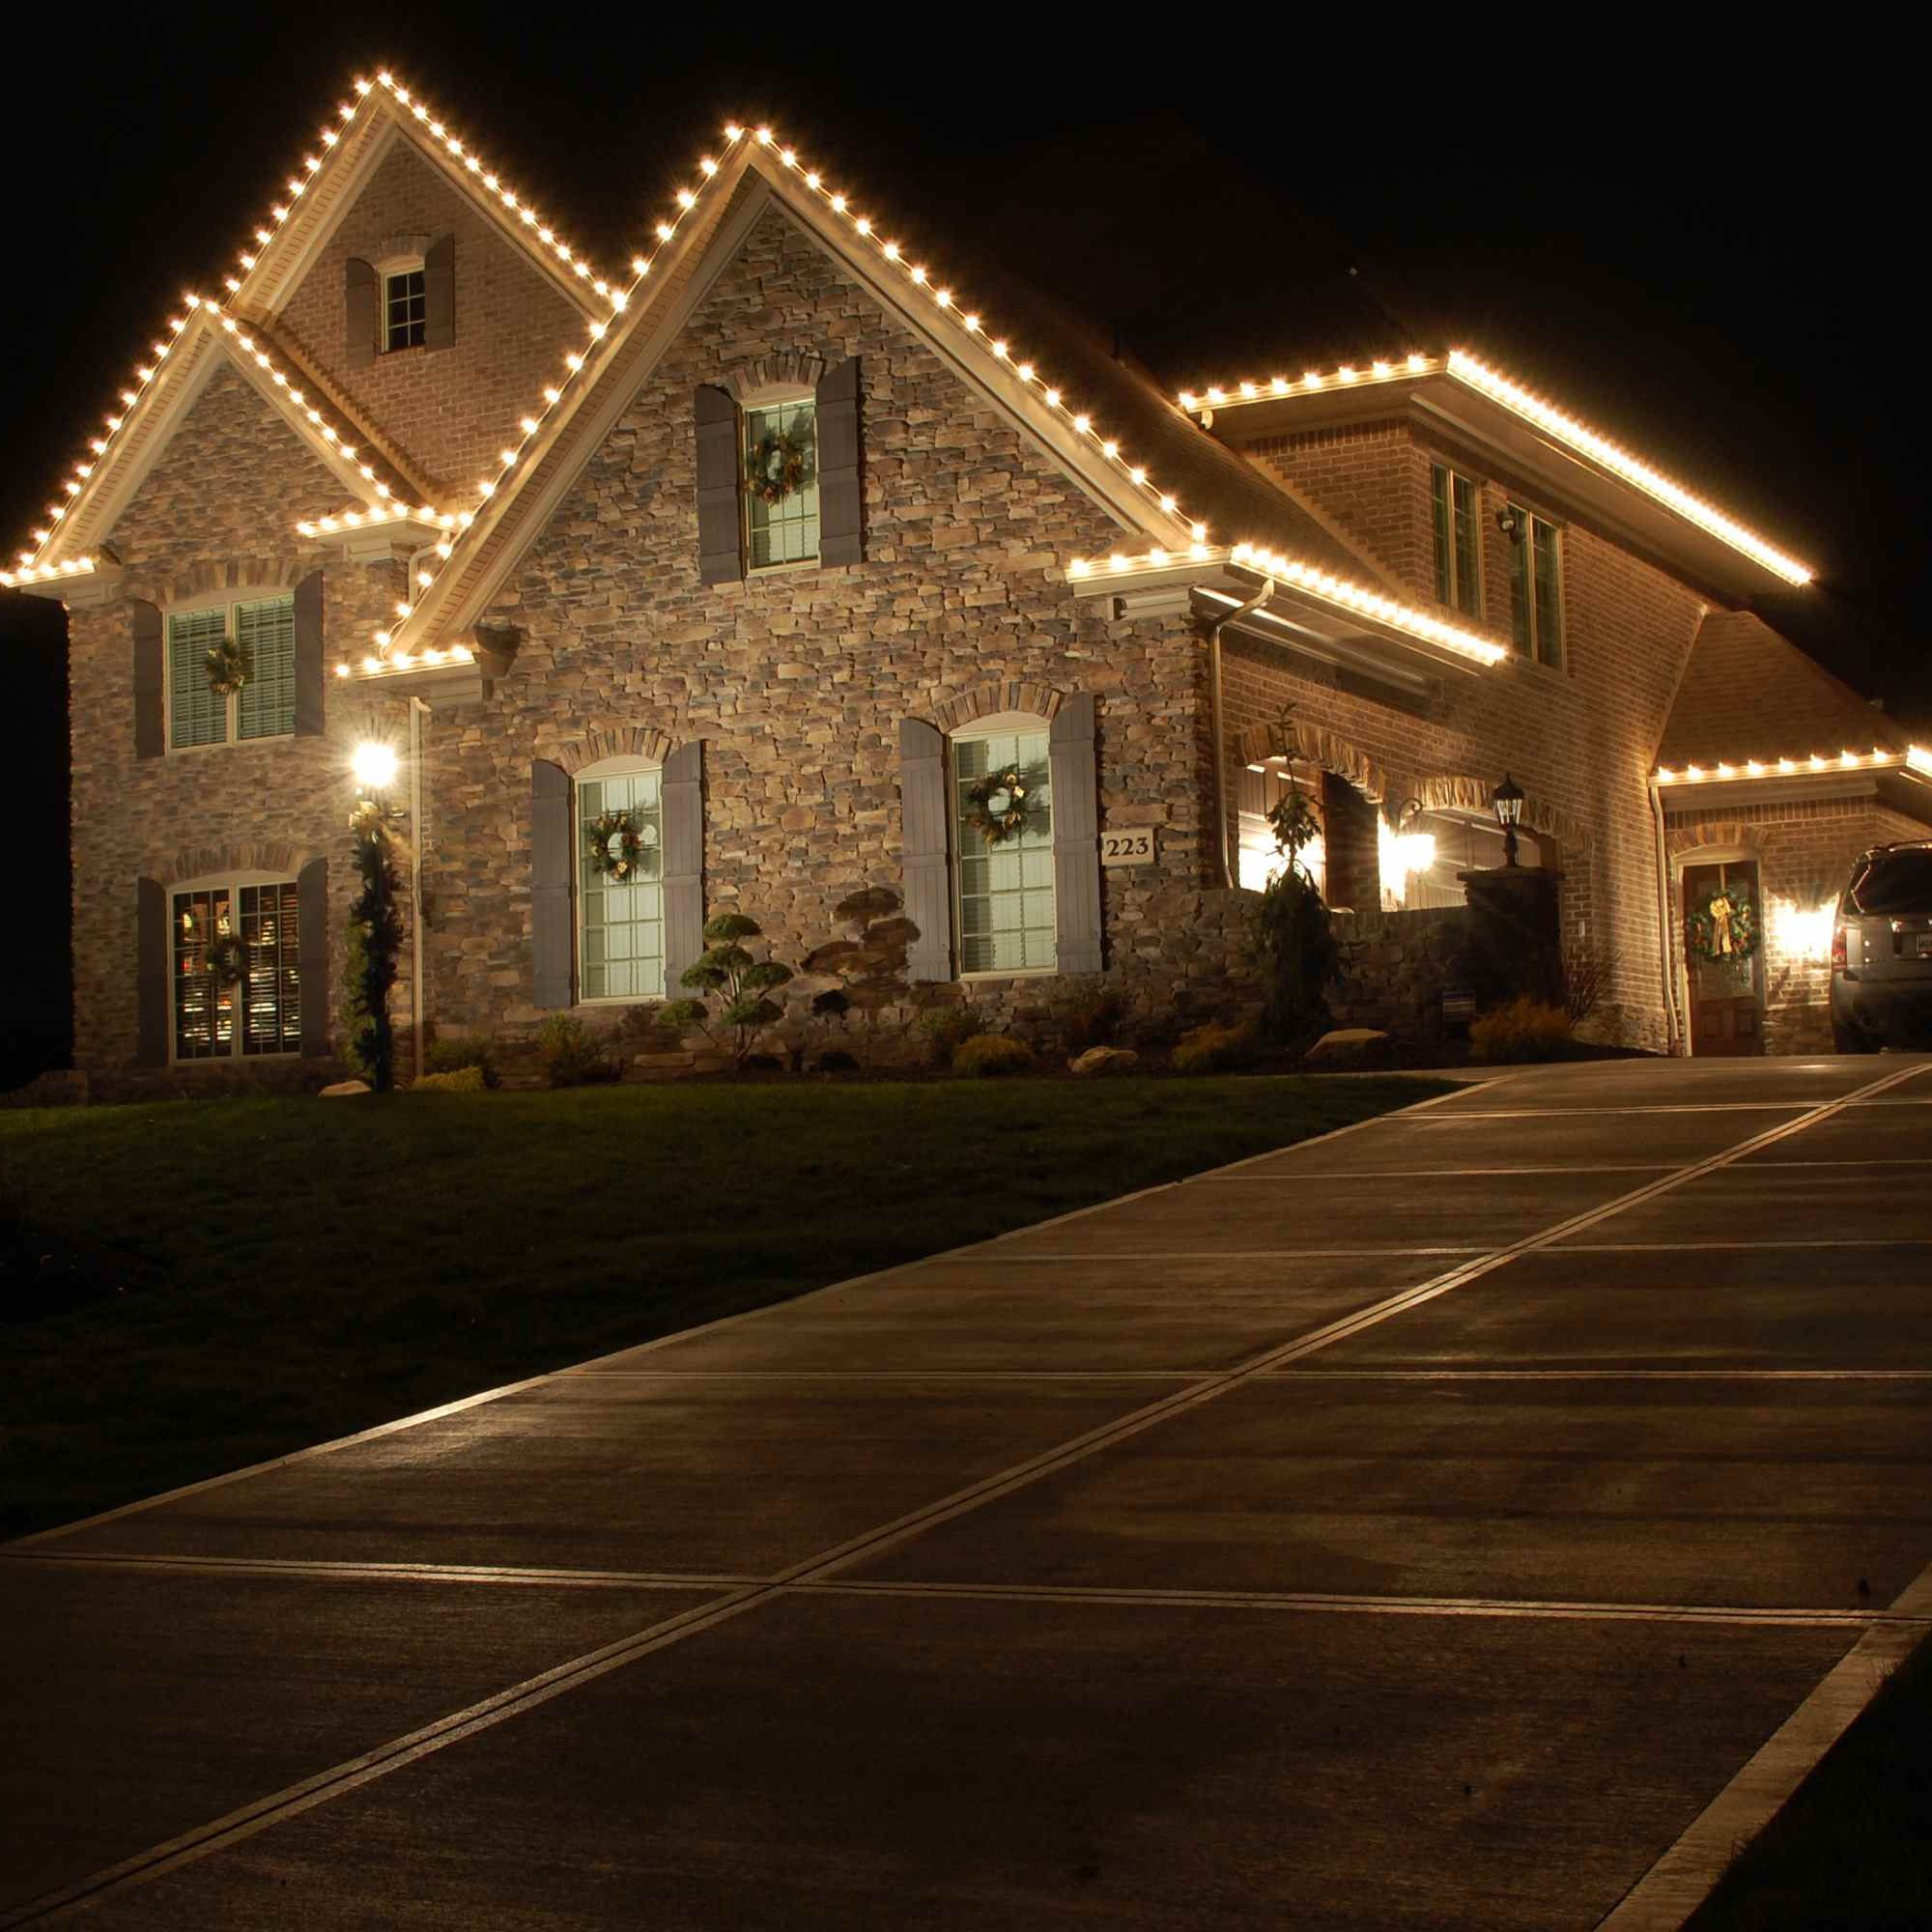 House With Lights for the Holidays